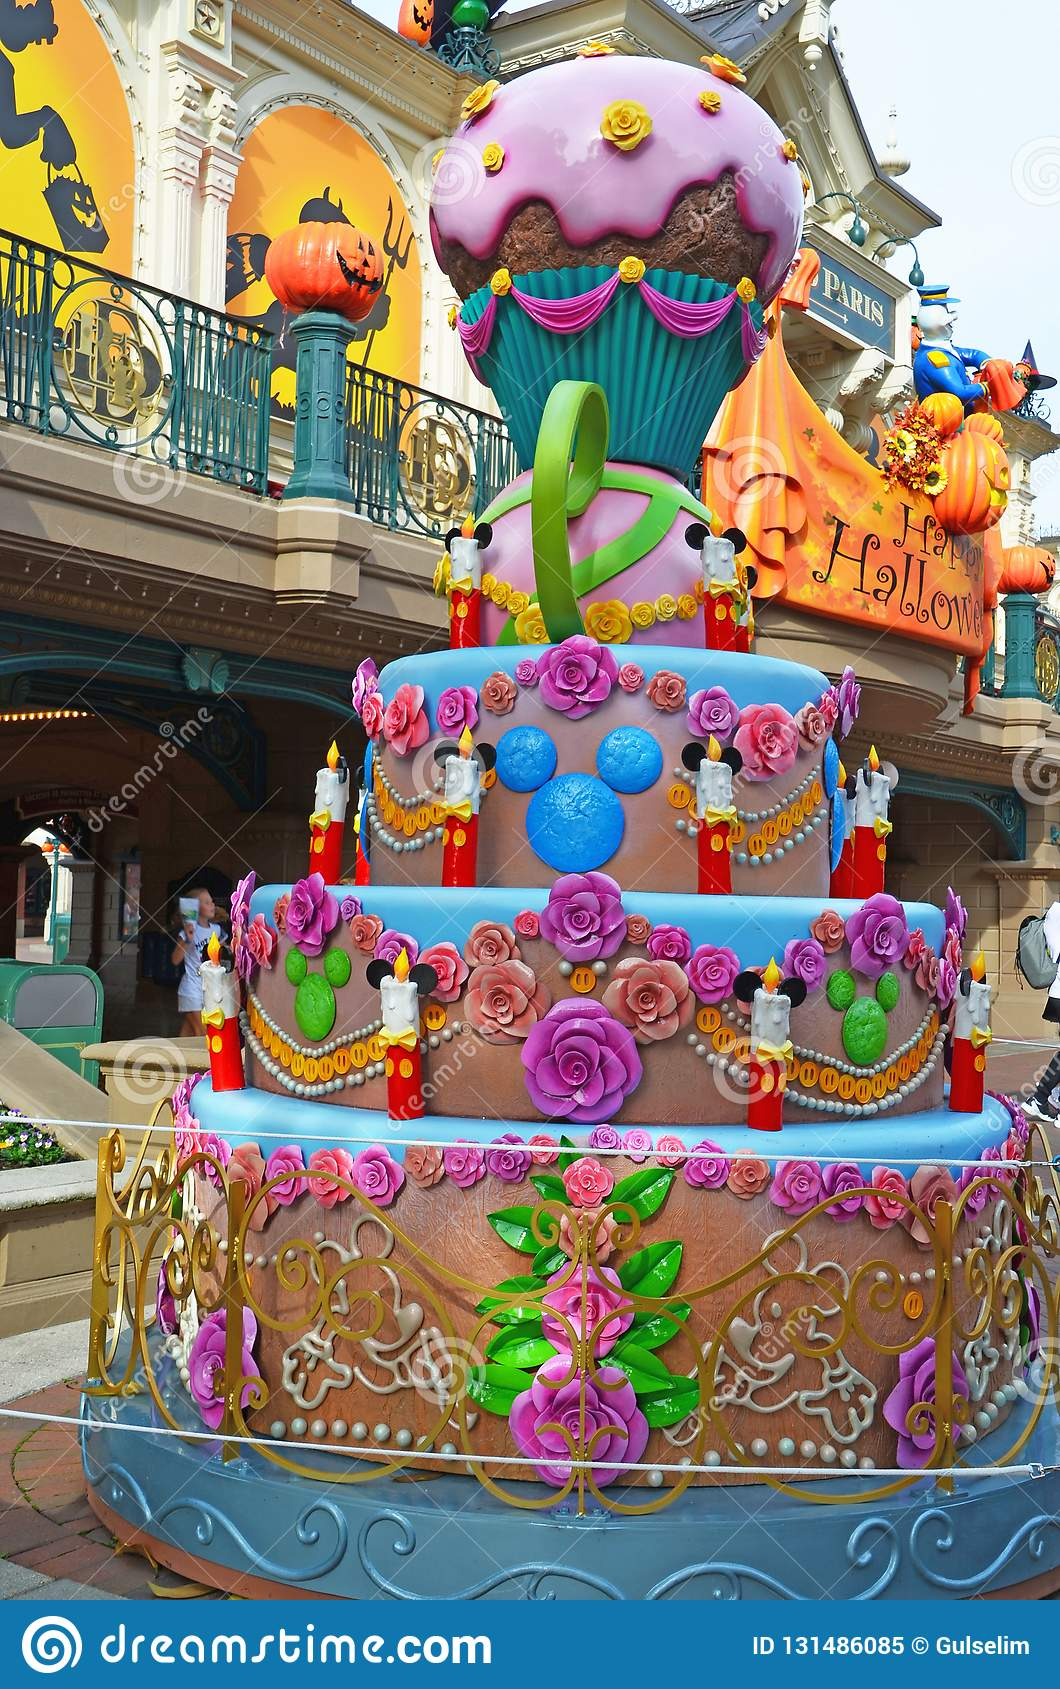 Peachy France Paris Disneyland October 14 2018 Disneyland Paris Funny Birthday Cards Online Chimdamsfinfo